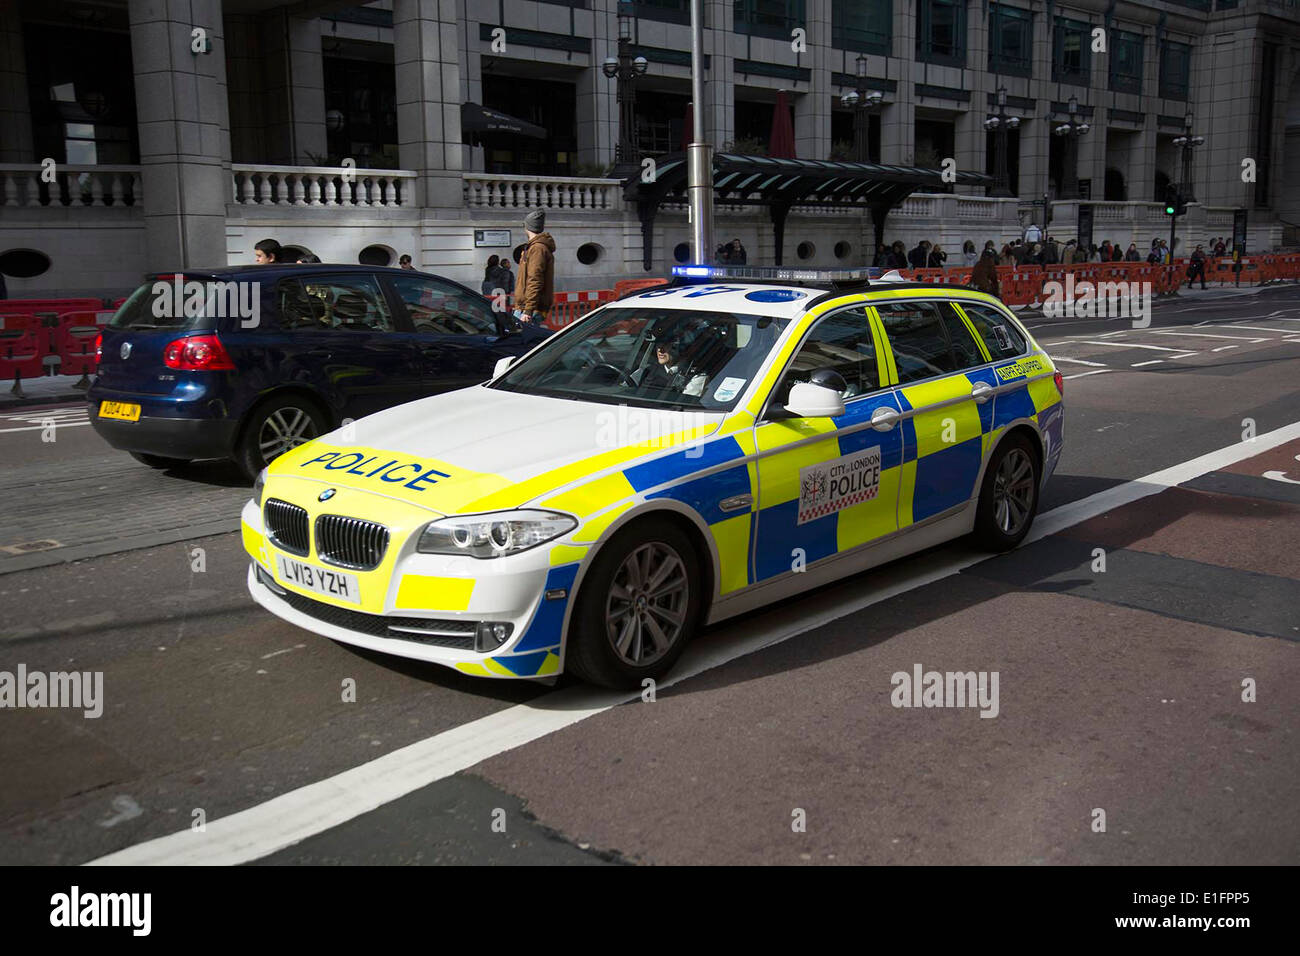 Police car passes at speed in the City of London, UK. Stock Photo